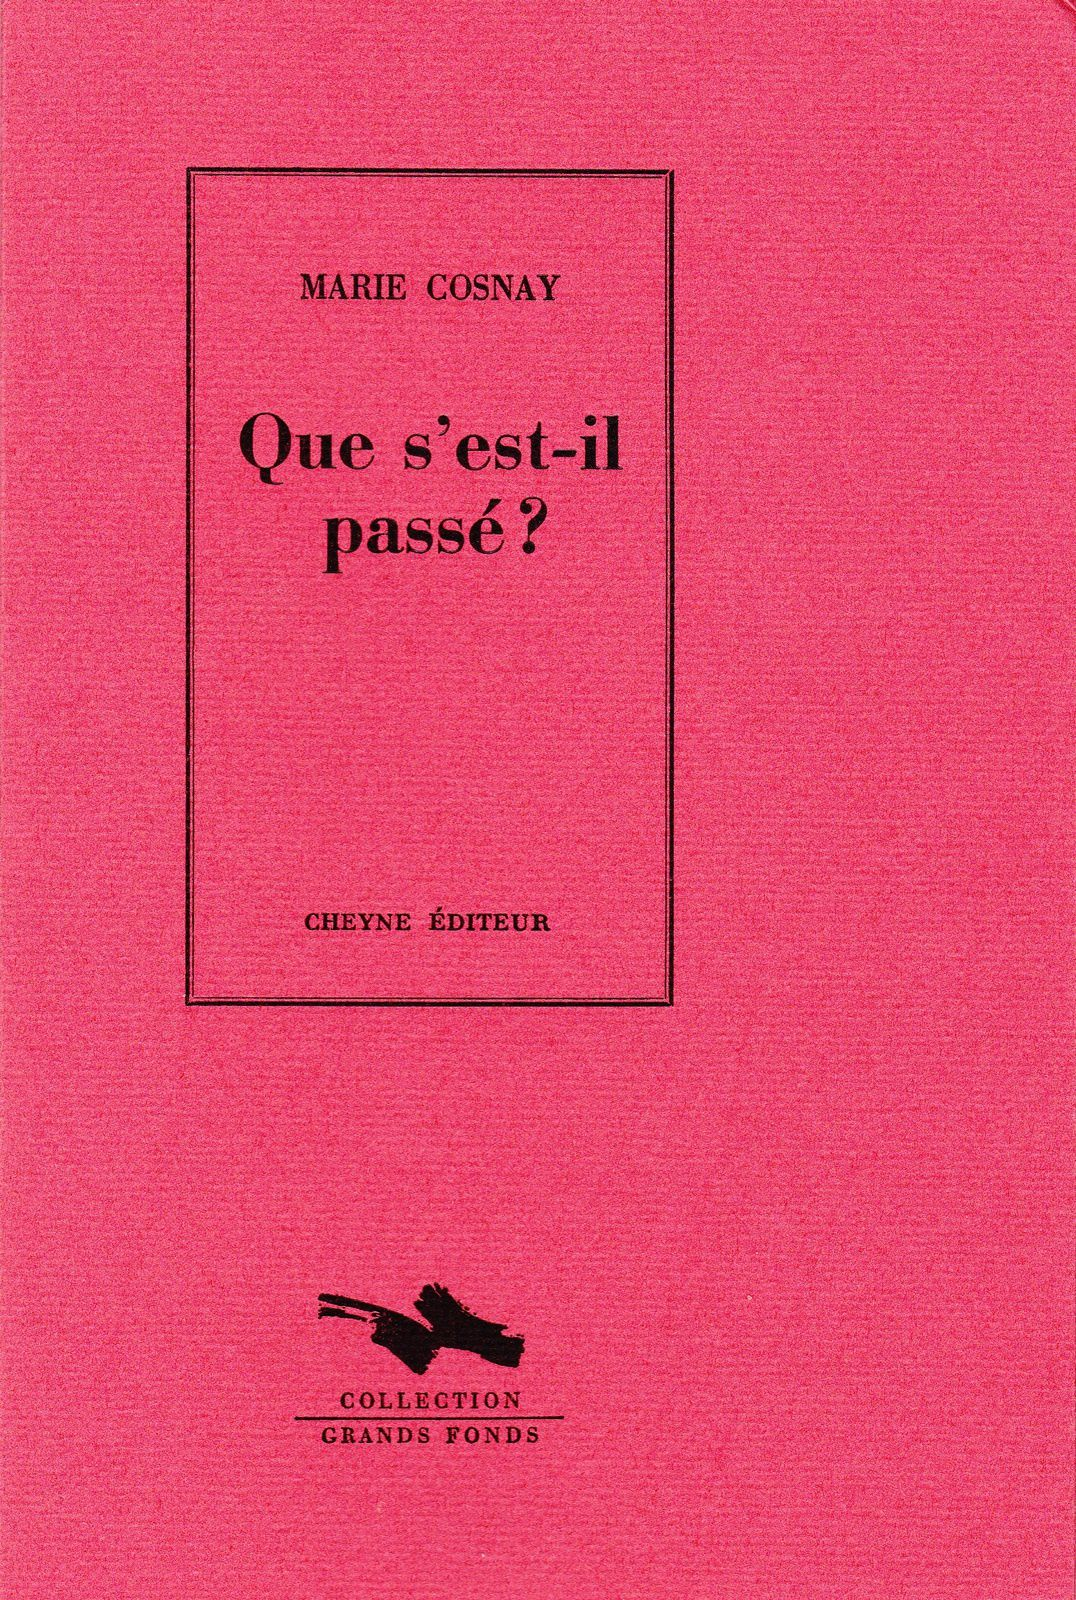 Dilatation - Marie Cosnay